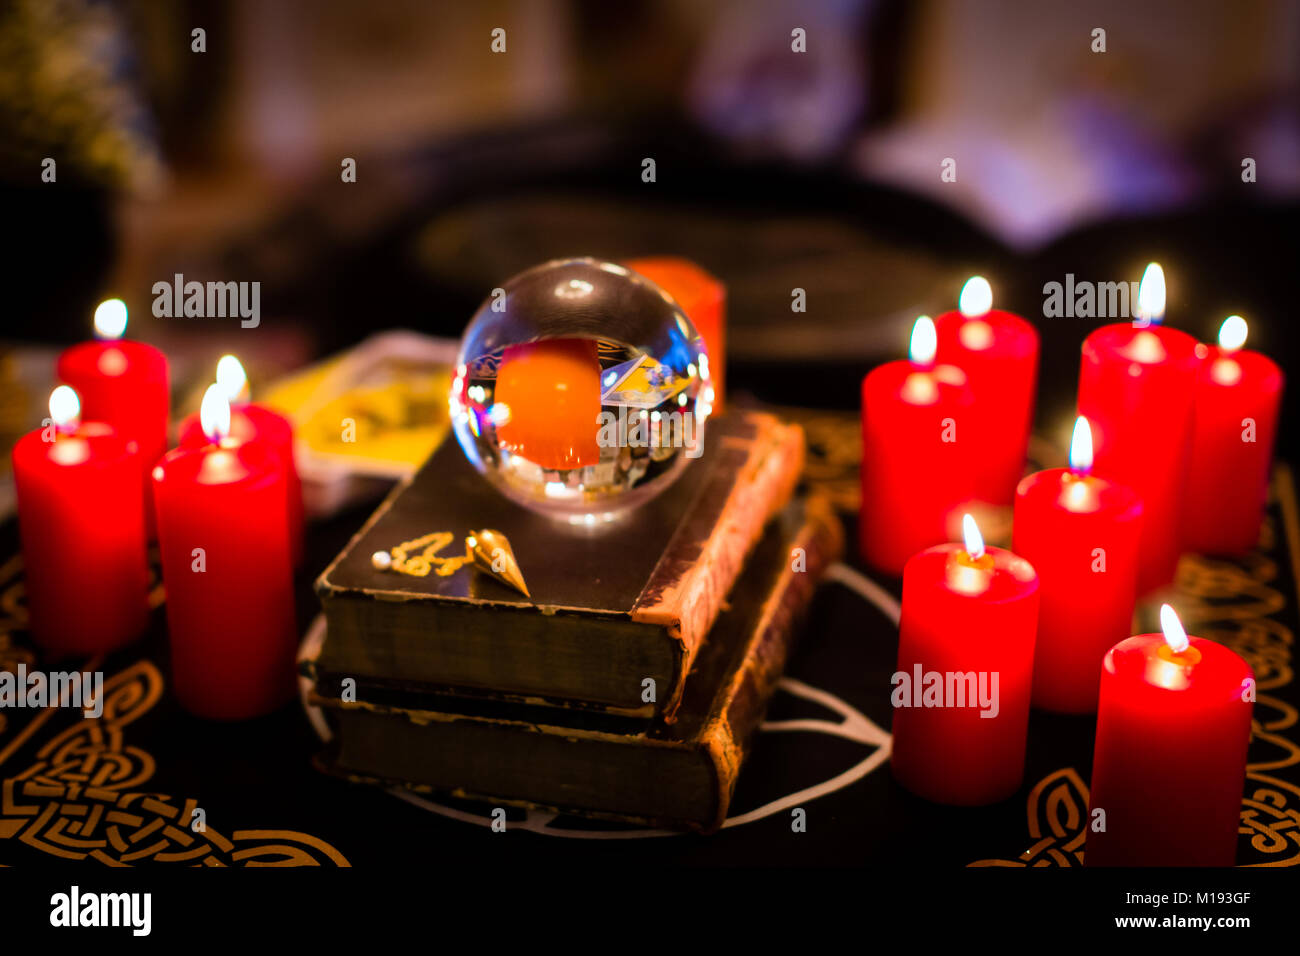 Crystal ball in the candle light to prophesy - Stock Image